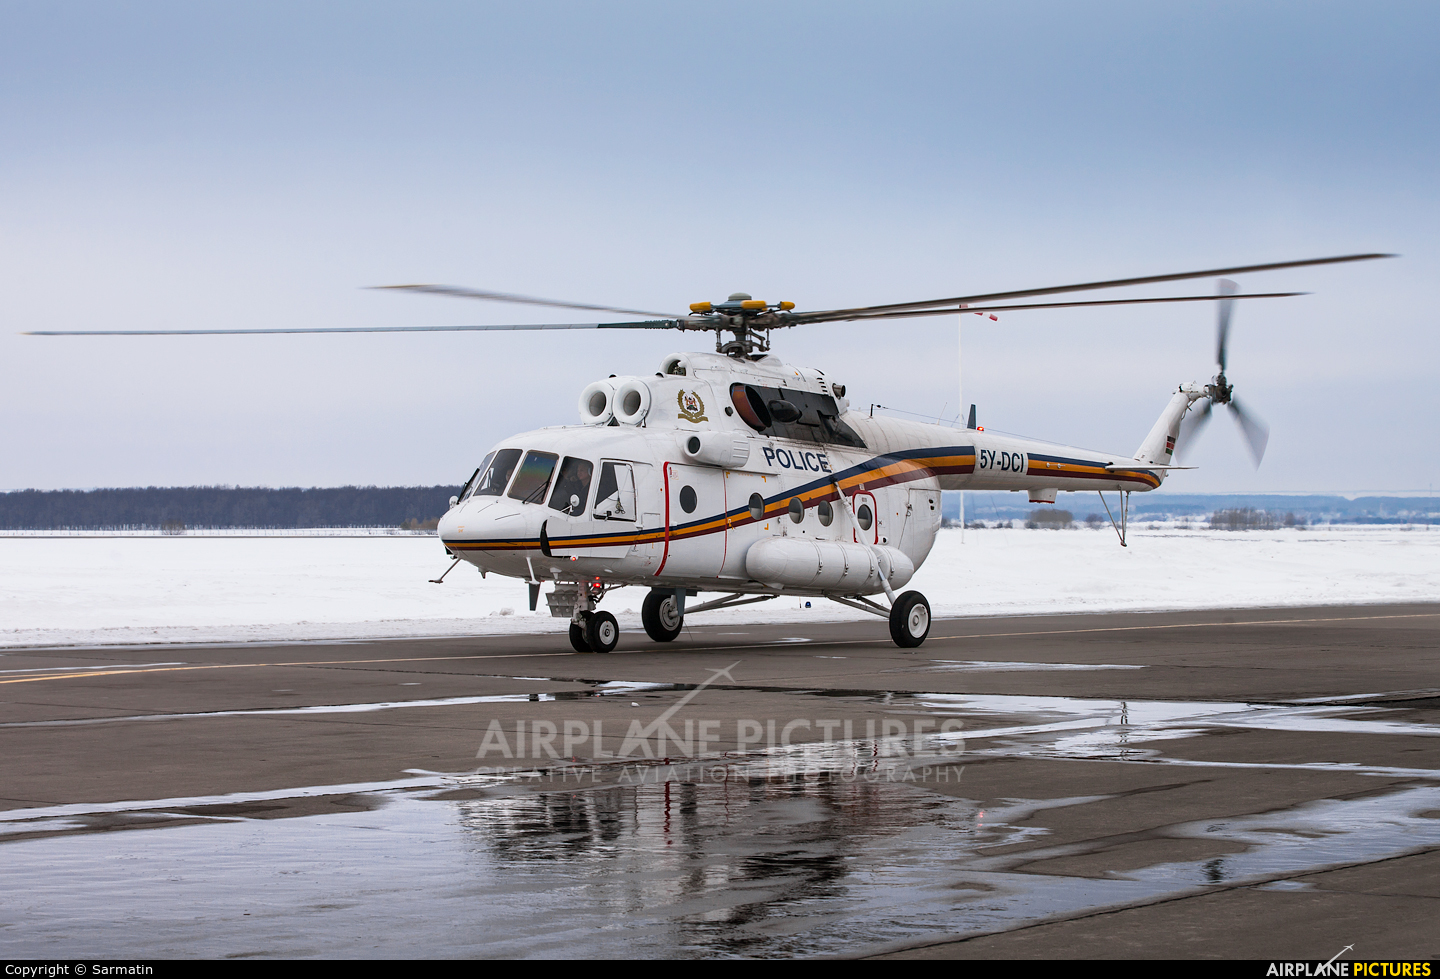 Kenya - Police Services 5Y-DCI aircraft at Kazan